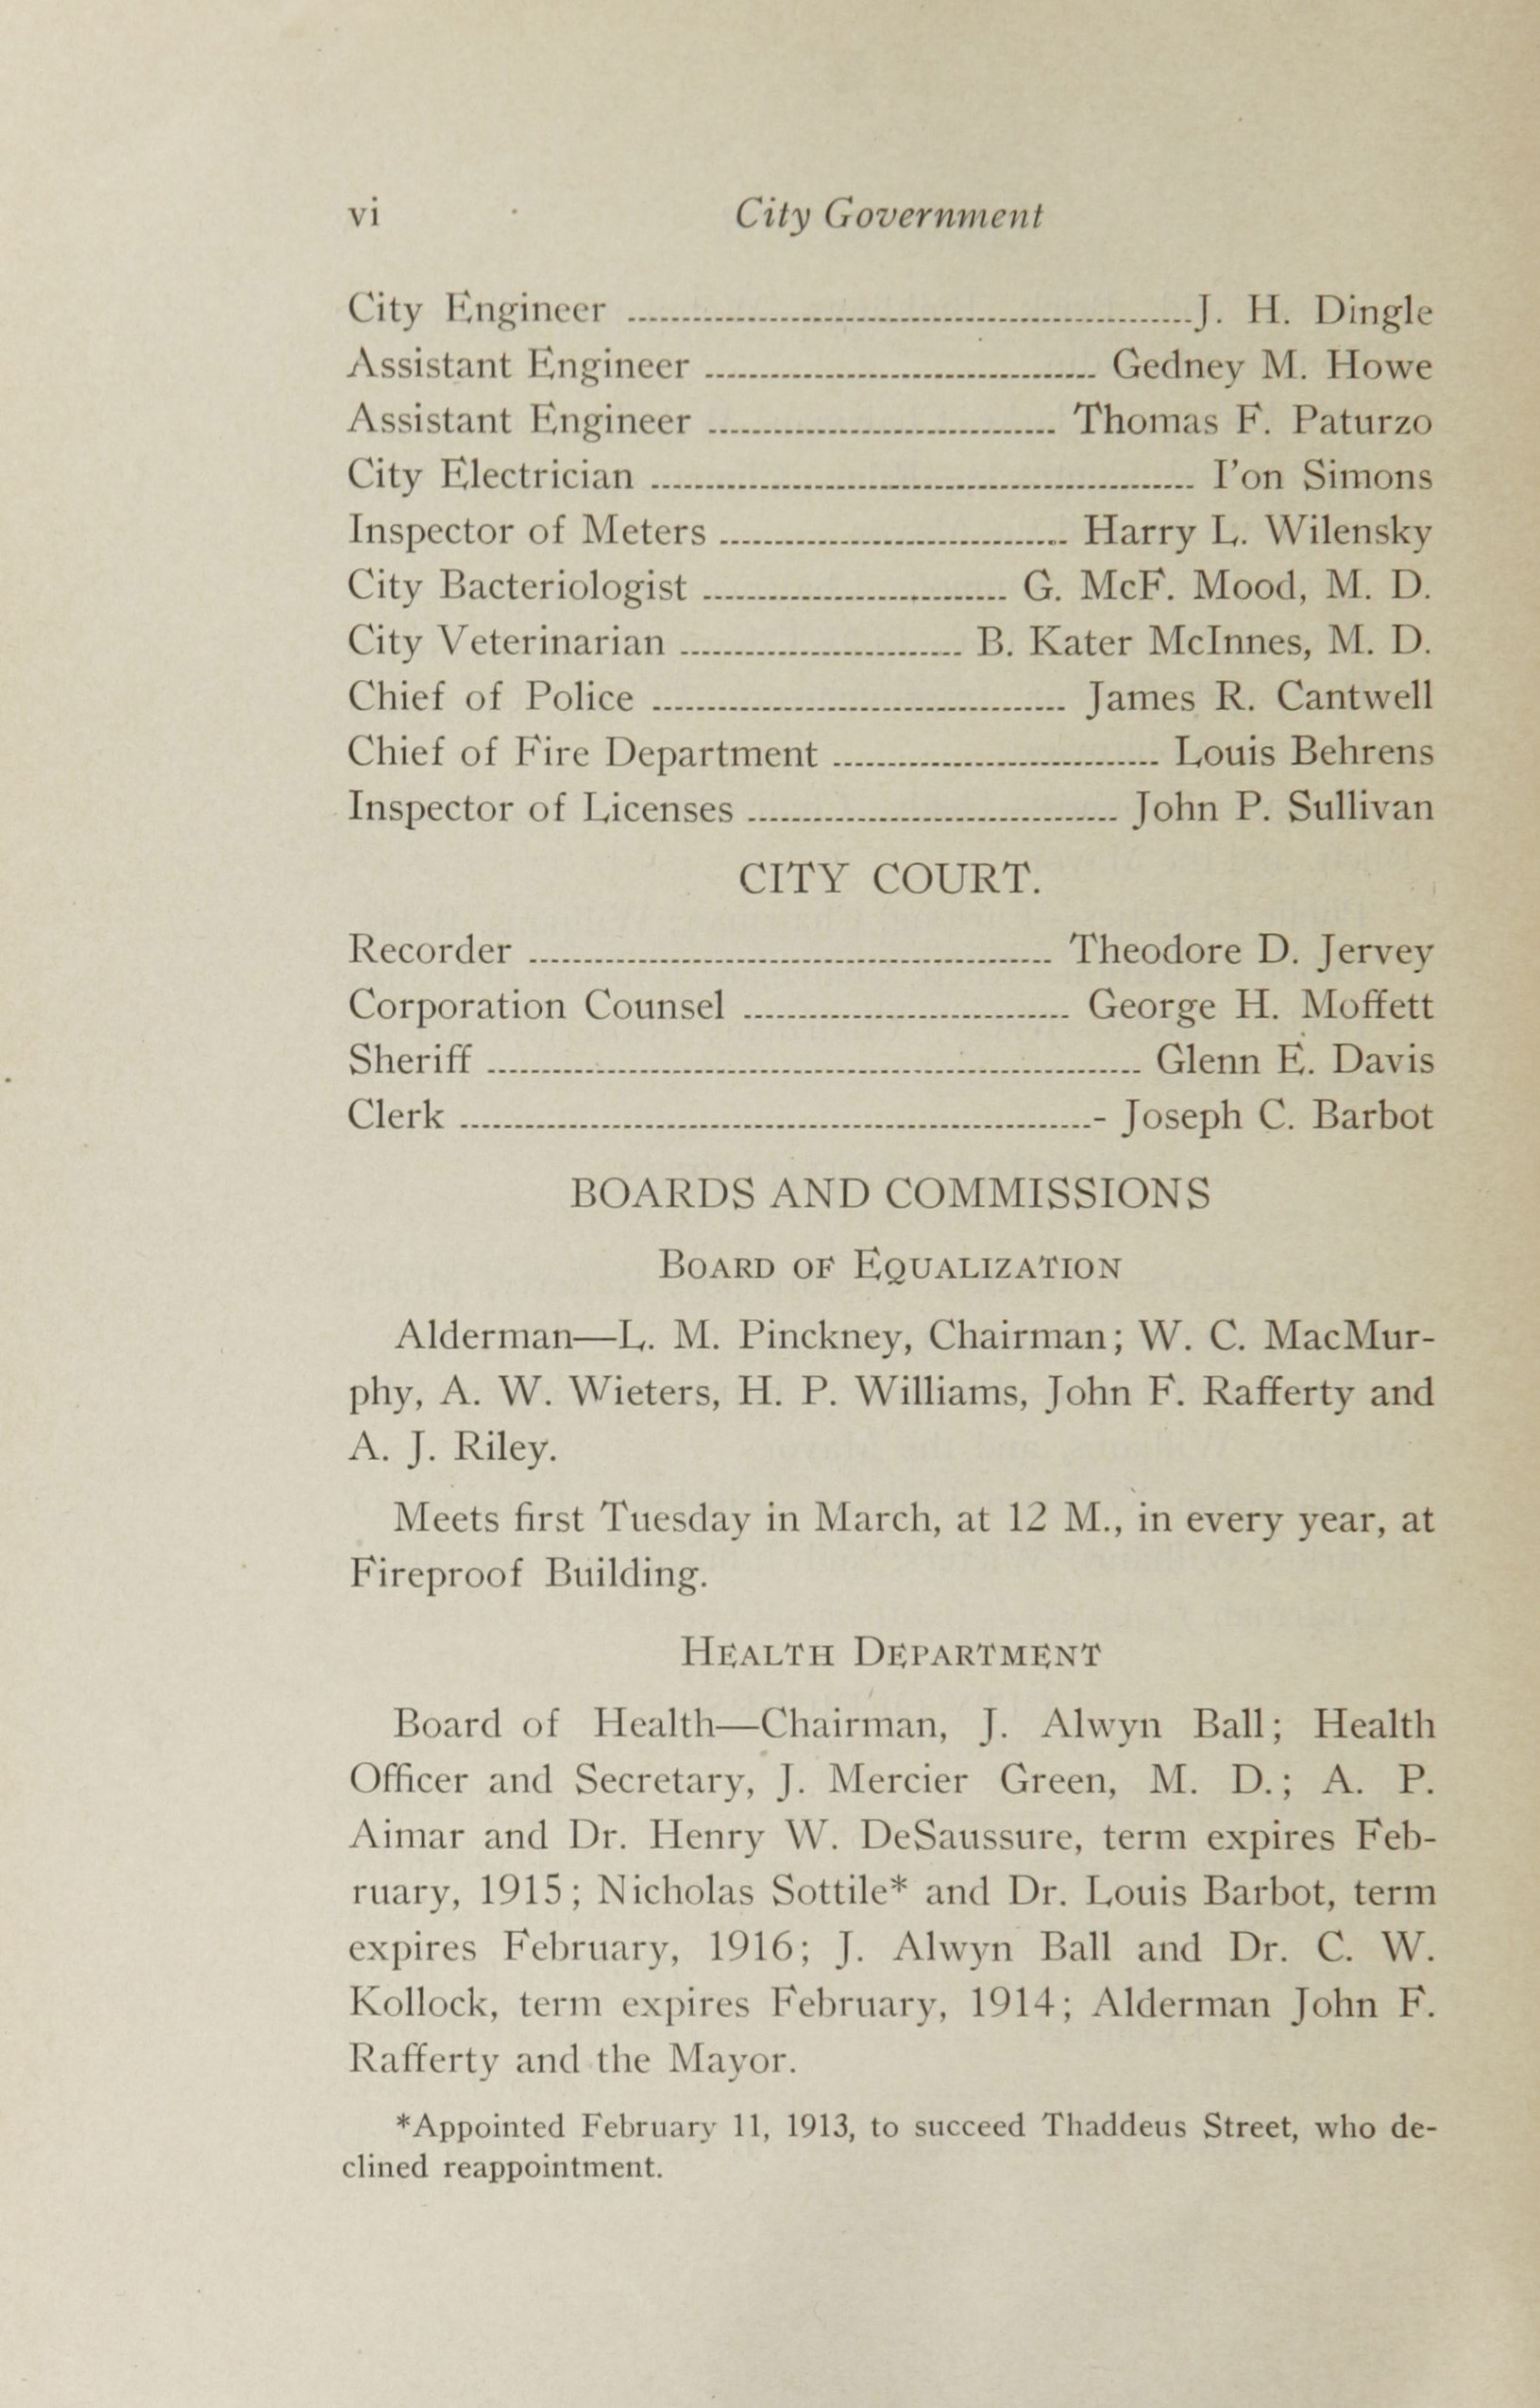 Charleston Yearbook, 1913, page vi